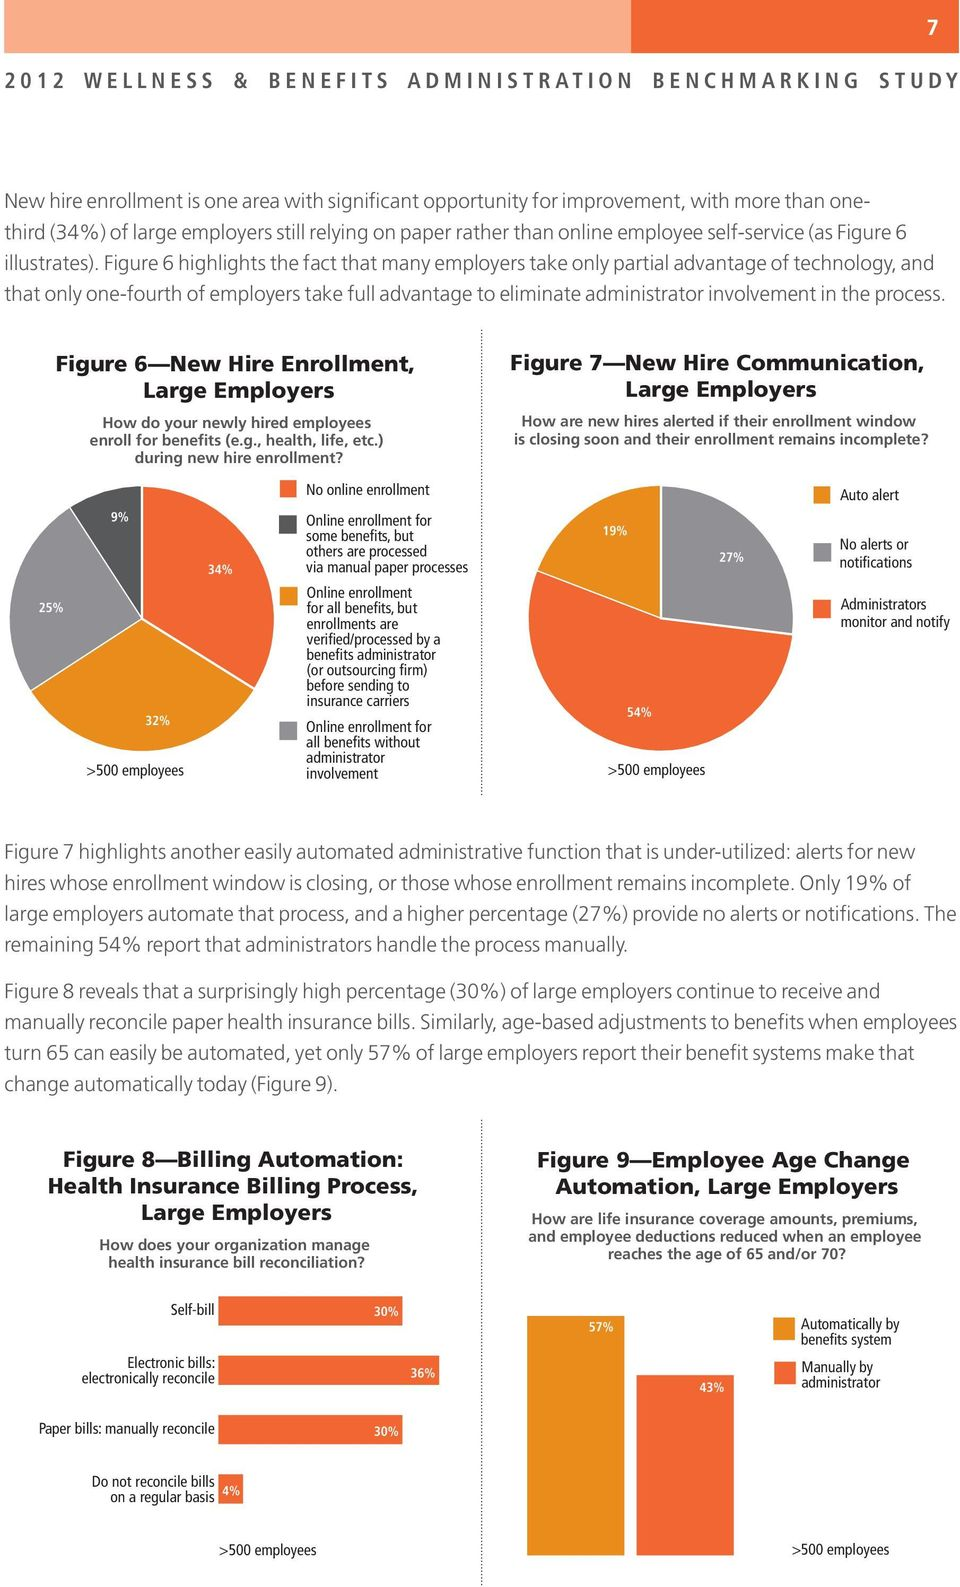 Figure 6 highlights the fact that many employers take only partial advantage of technology, and that only one-fourth of employers take full advantage to eliminate administrator involvement in the